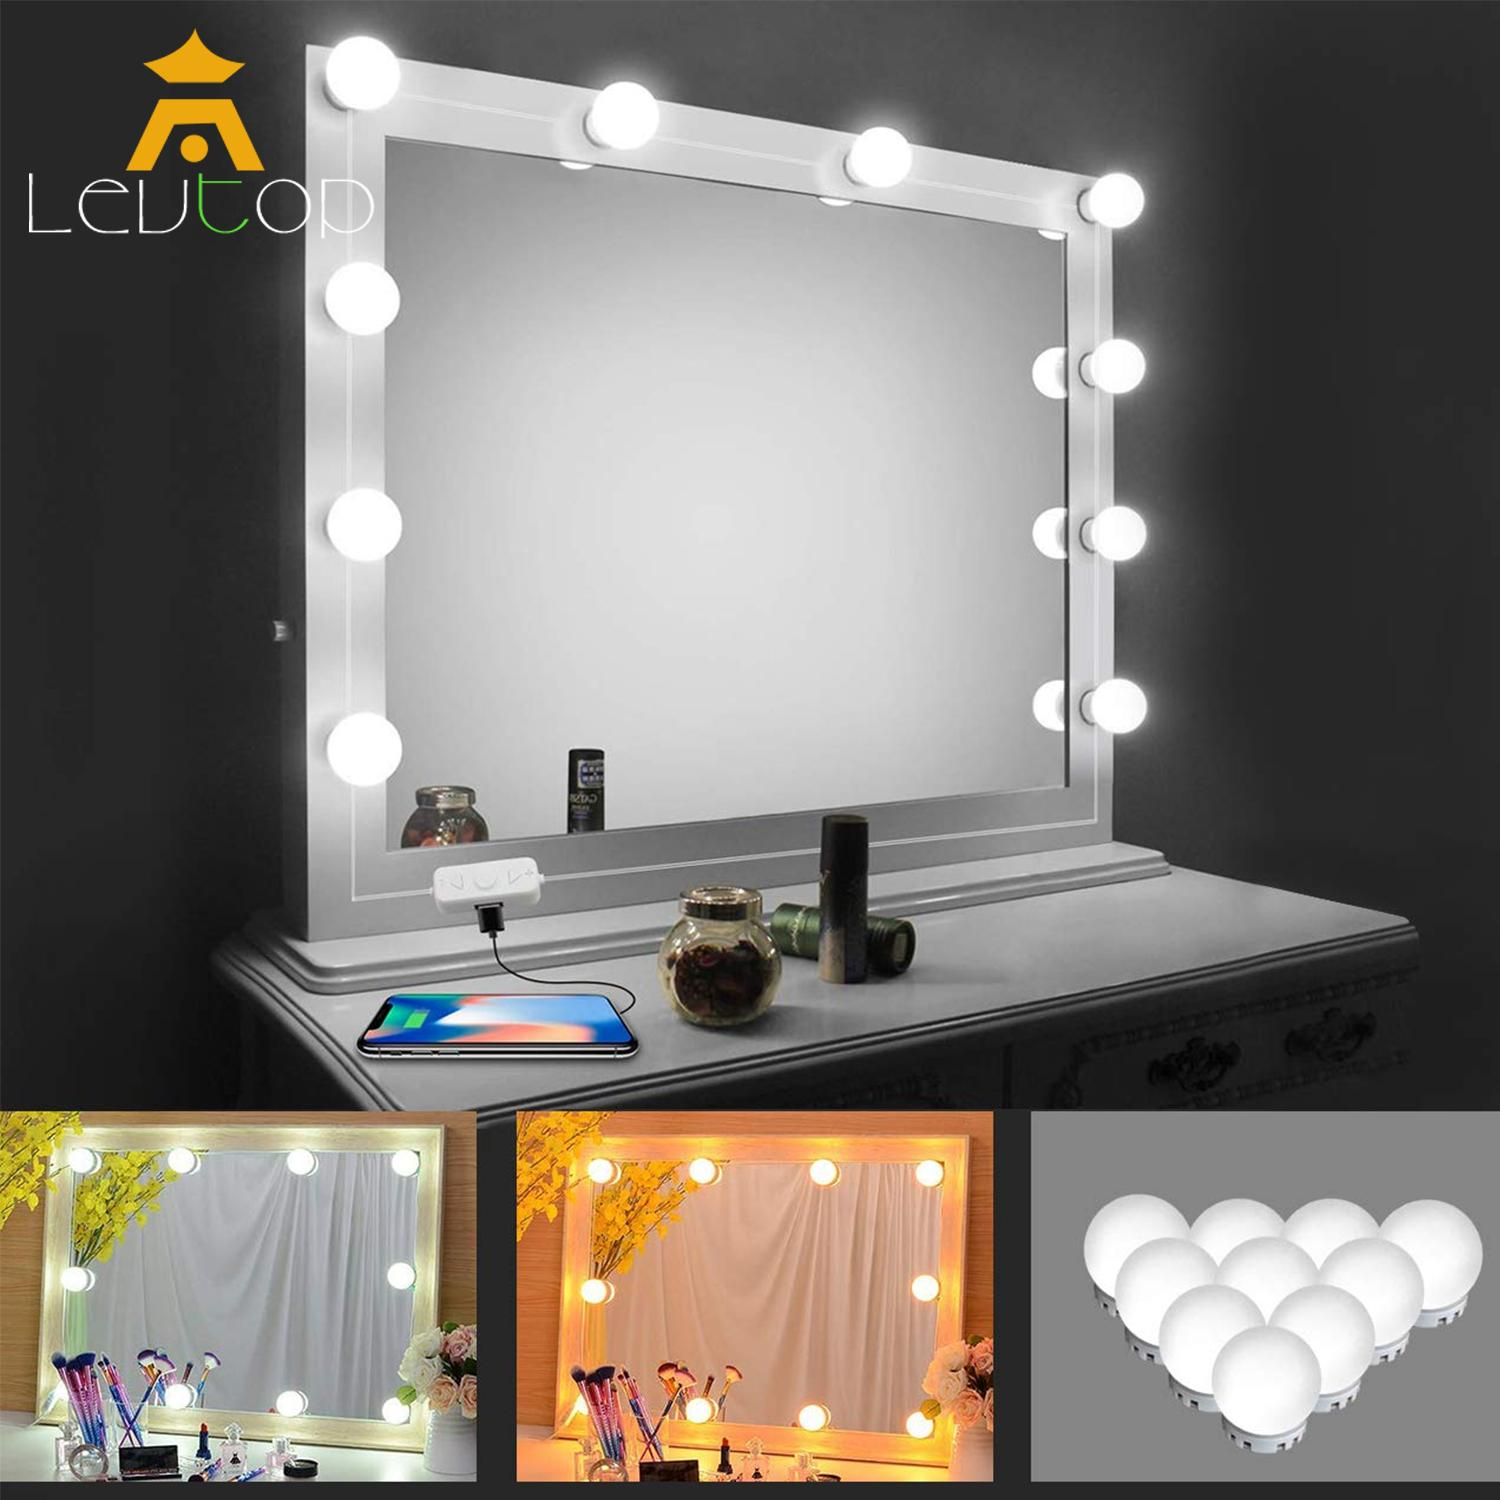 LEVTOP Vanity Mirror Lights Moonnight Hollywood Style LED Makeup Lights with Dimmer and USB Phone Charger Warm and Cold Lights Dimmable Bulbs with USB Support for Bathroom Dressing Room tốt nhất